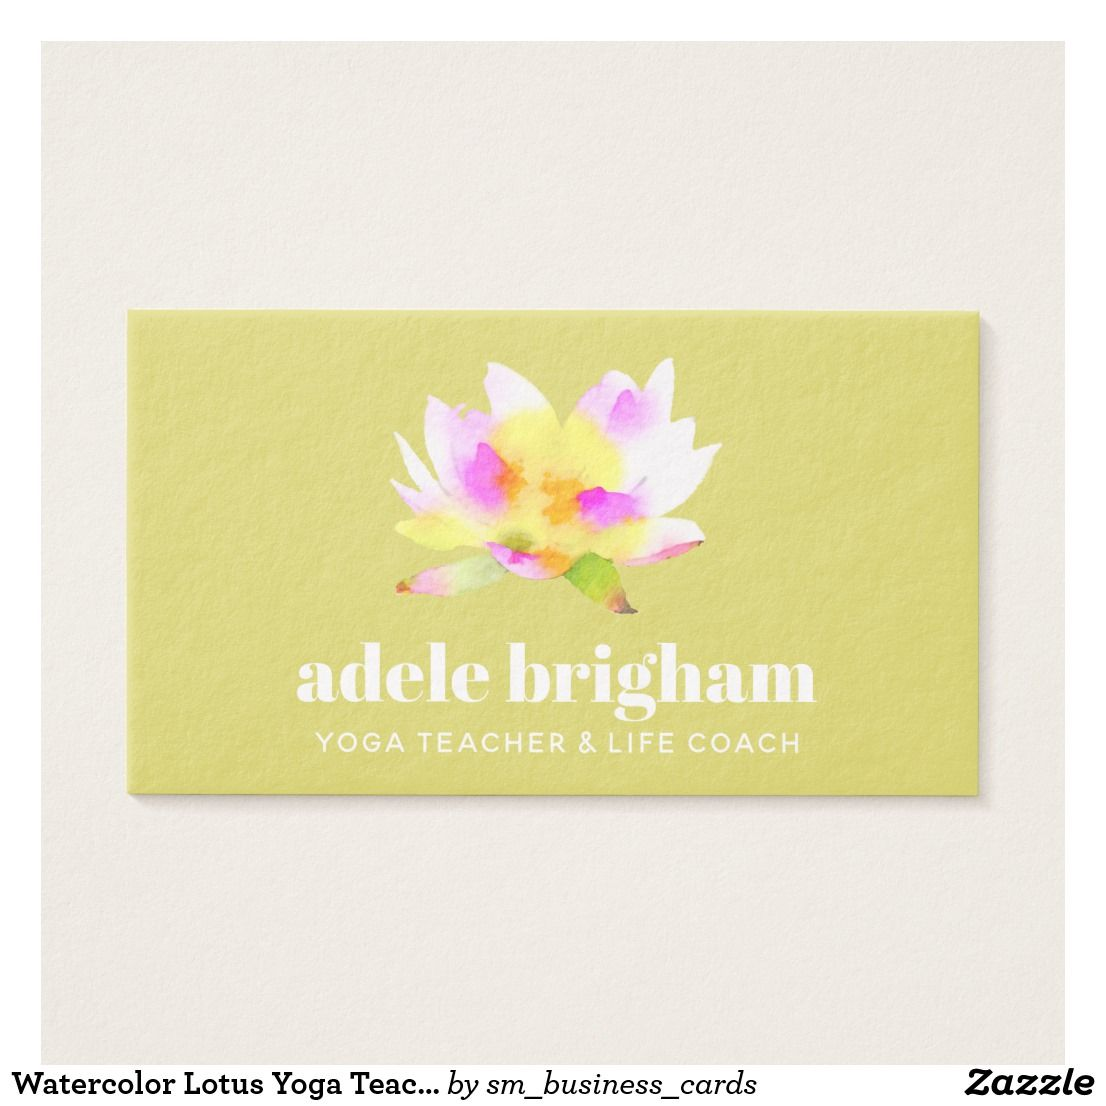 Watercolor Lotus Yoga Teacher and Life Coach Business Card | Yoga ...